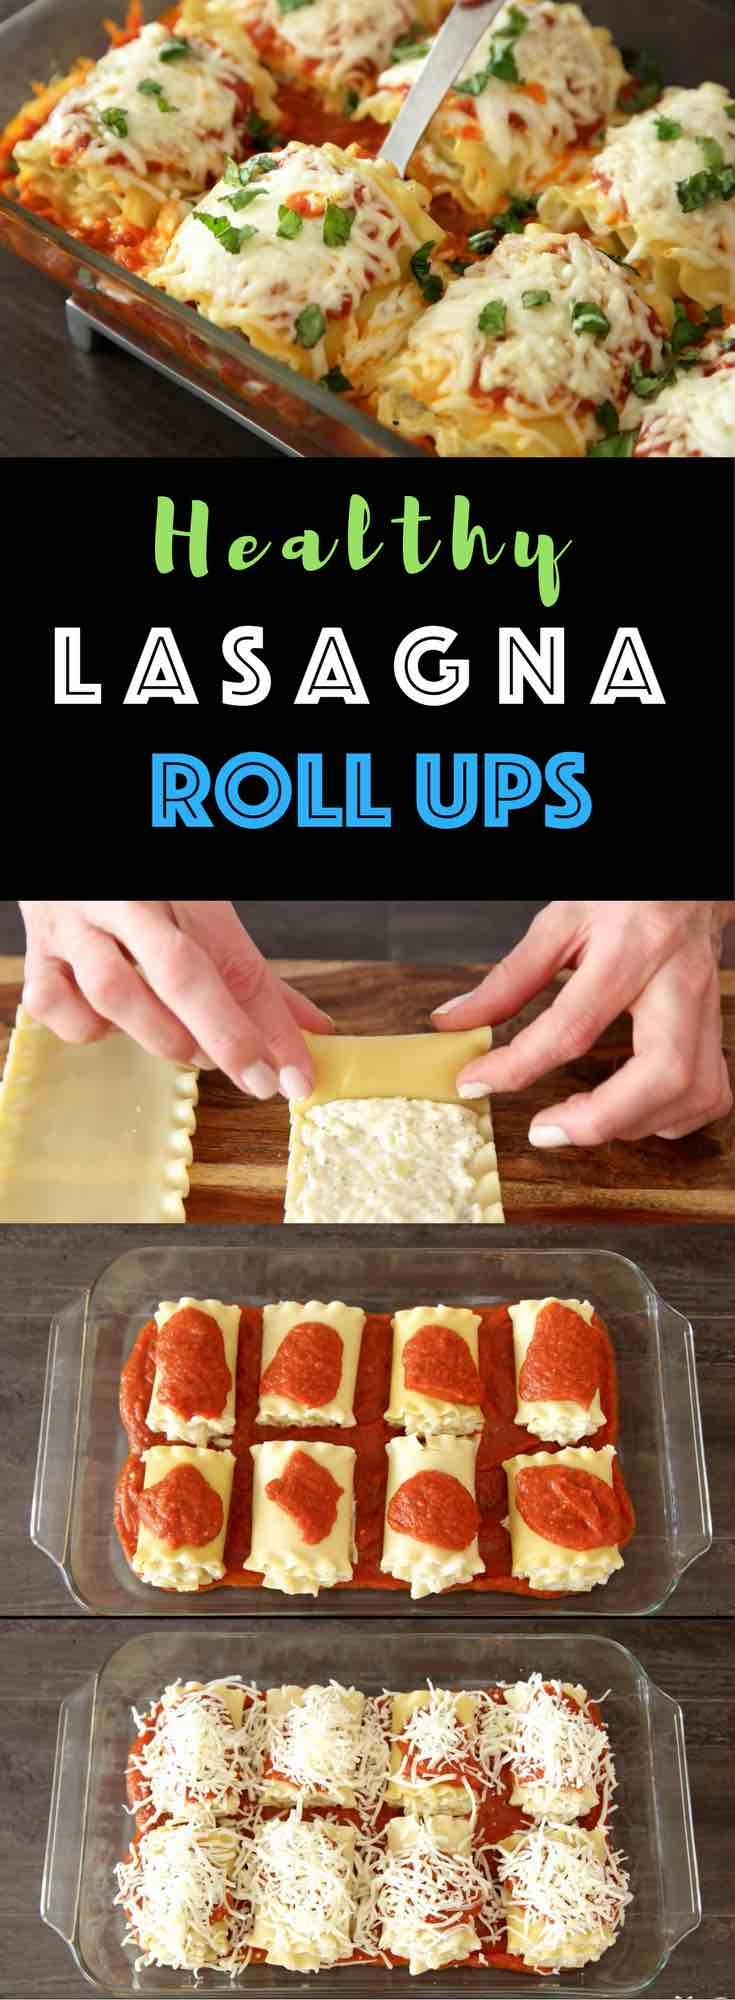 Easy, cheesy and healthy Zucchini Lasagna Roll Ups – Really easy to make and are a guilt-free way to enjoy the pleasure of lasagna. All you need is a few simple ingredients: lasagna noodles, zucchini, ricotta cheese, parmesan cheese, mozzarella, oil, garlic, egg, marinara and fresh basil for garnish. A perfect healthy dinner for the whole family! Quick and easy dinner recipe, vegetarian, healthy recipe. | Tipbuzz.com